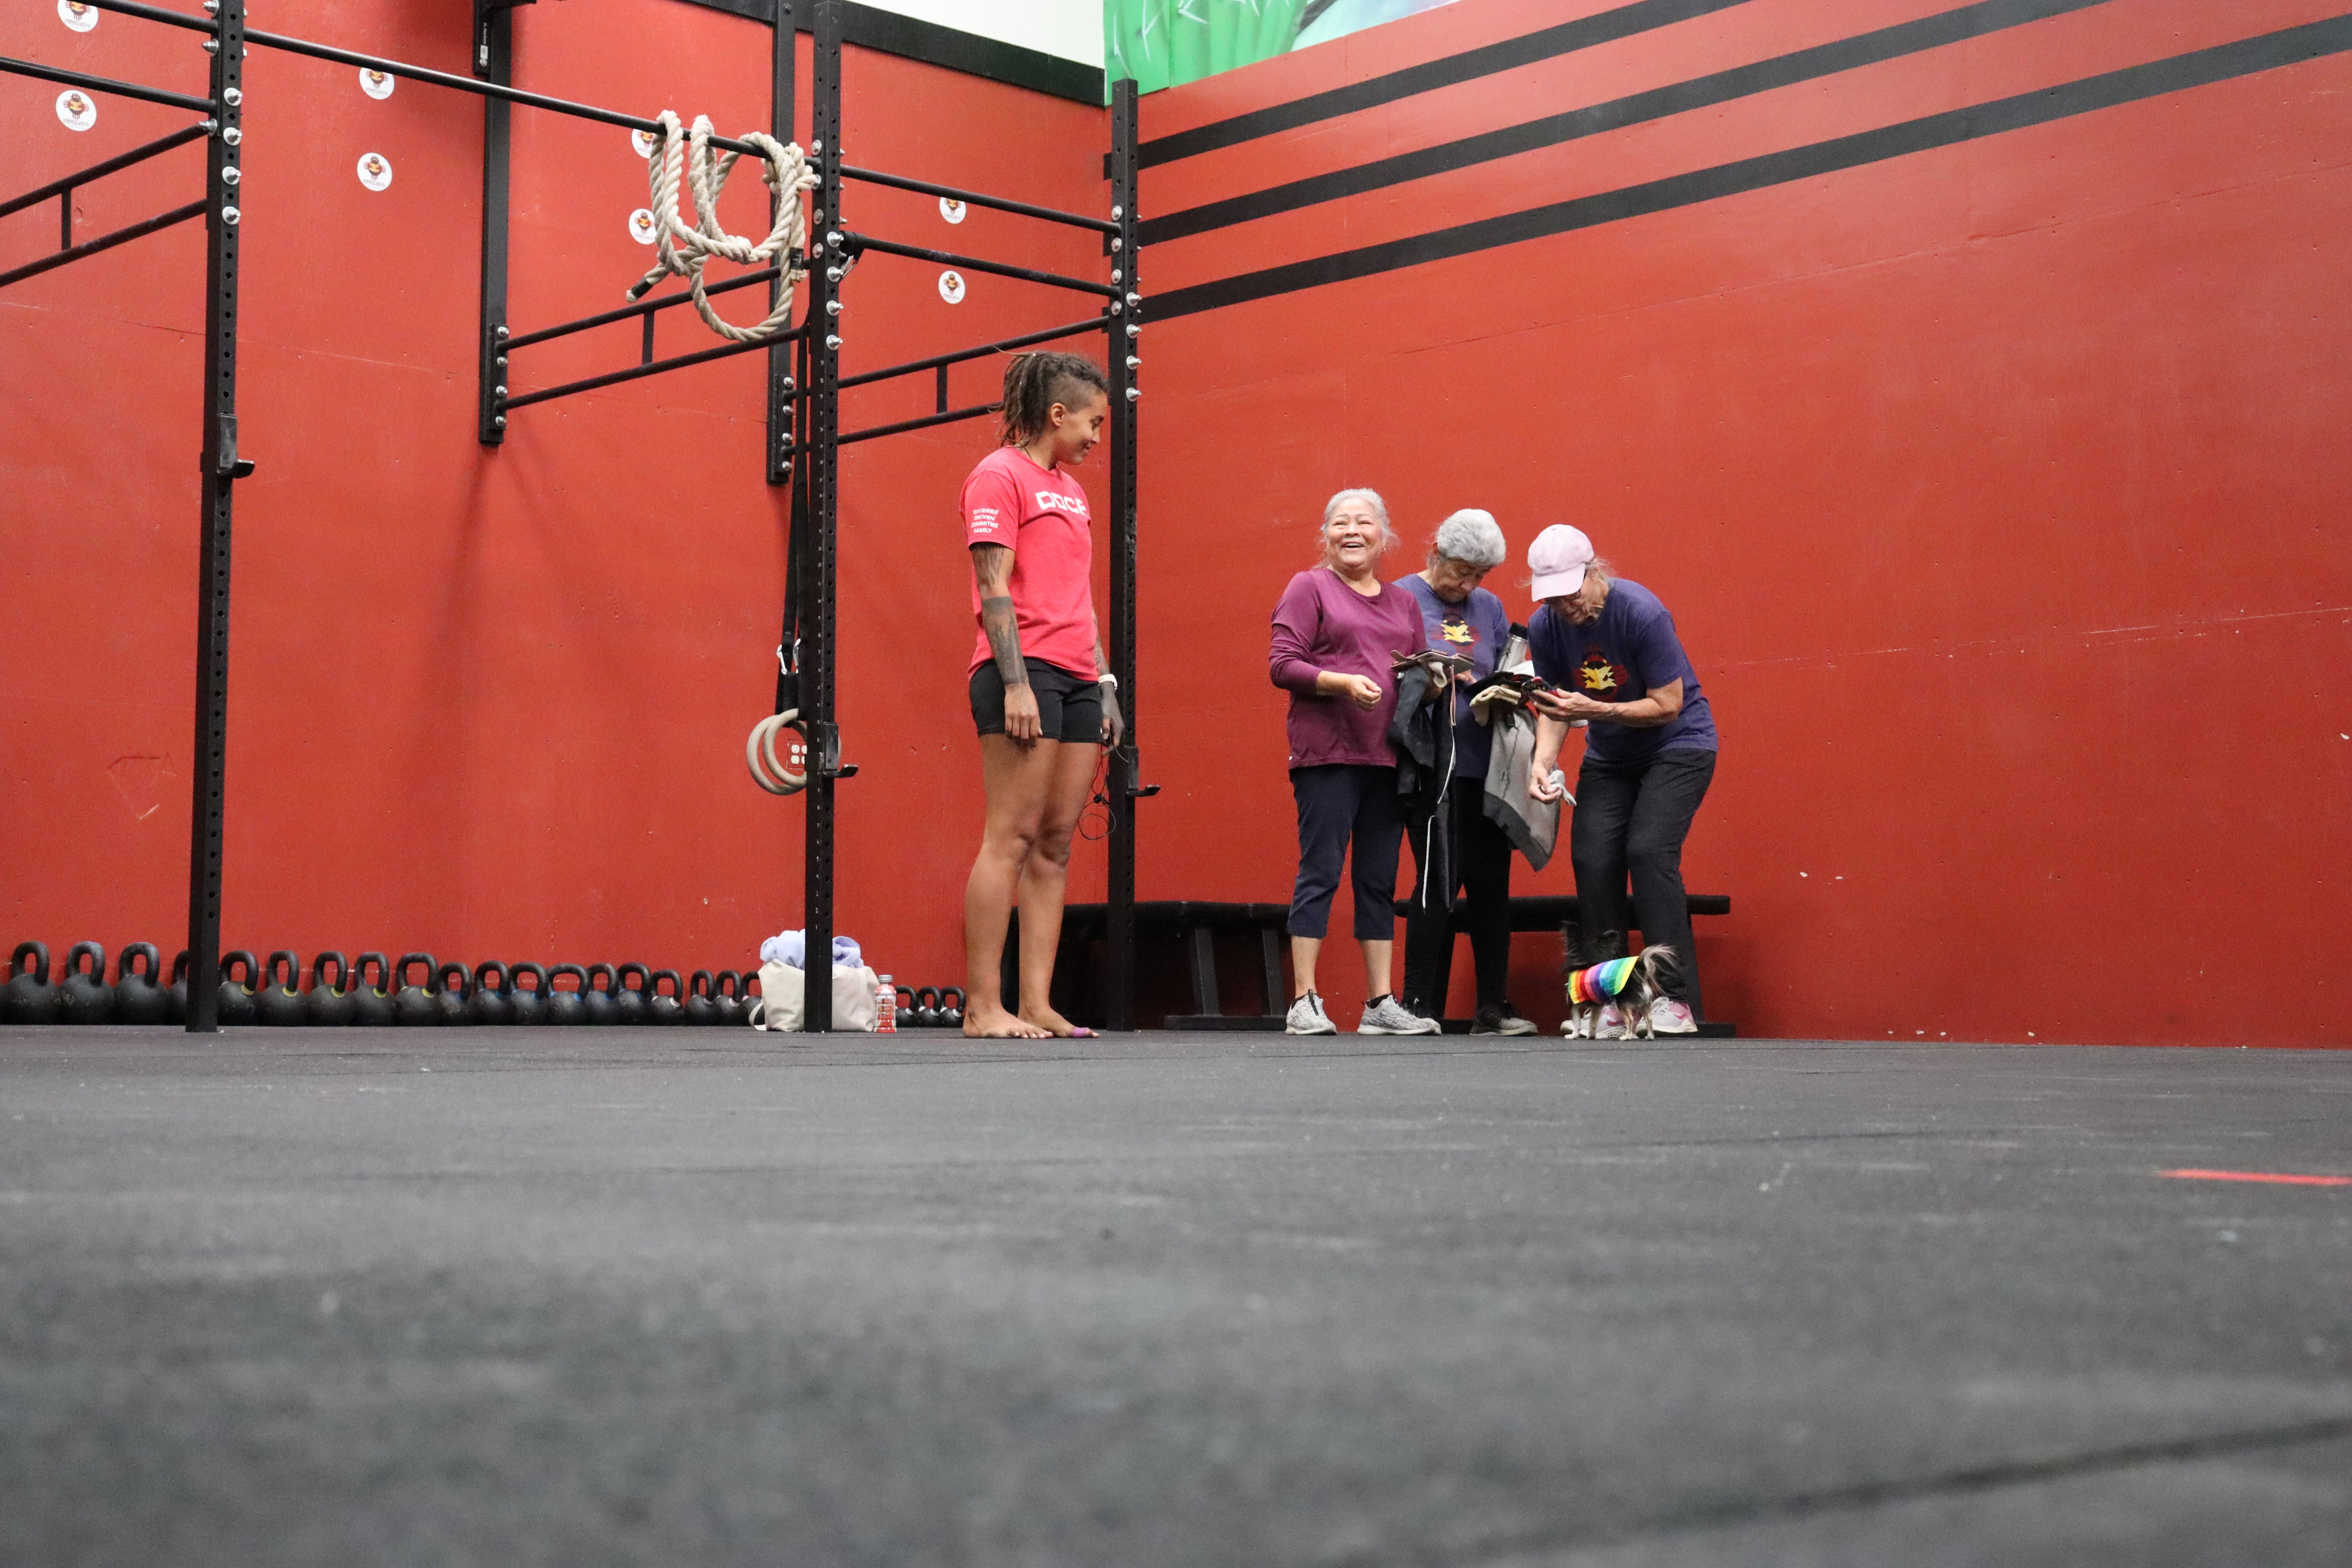 WEEKLY WOD OVERVIEW FOR OCTOBER 18TH TO 24TH, 2021